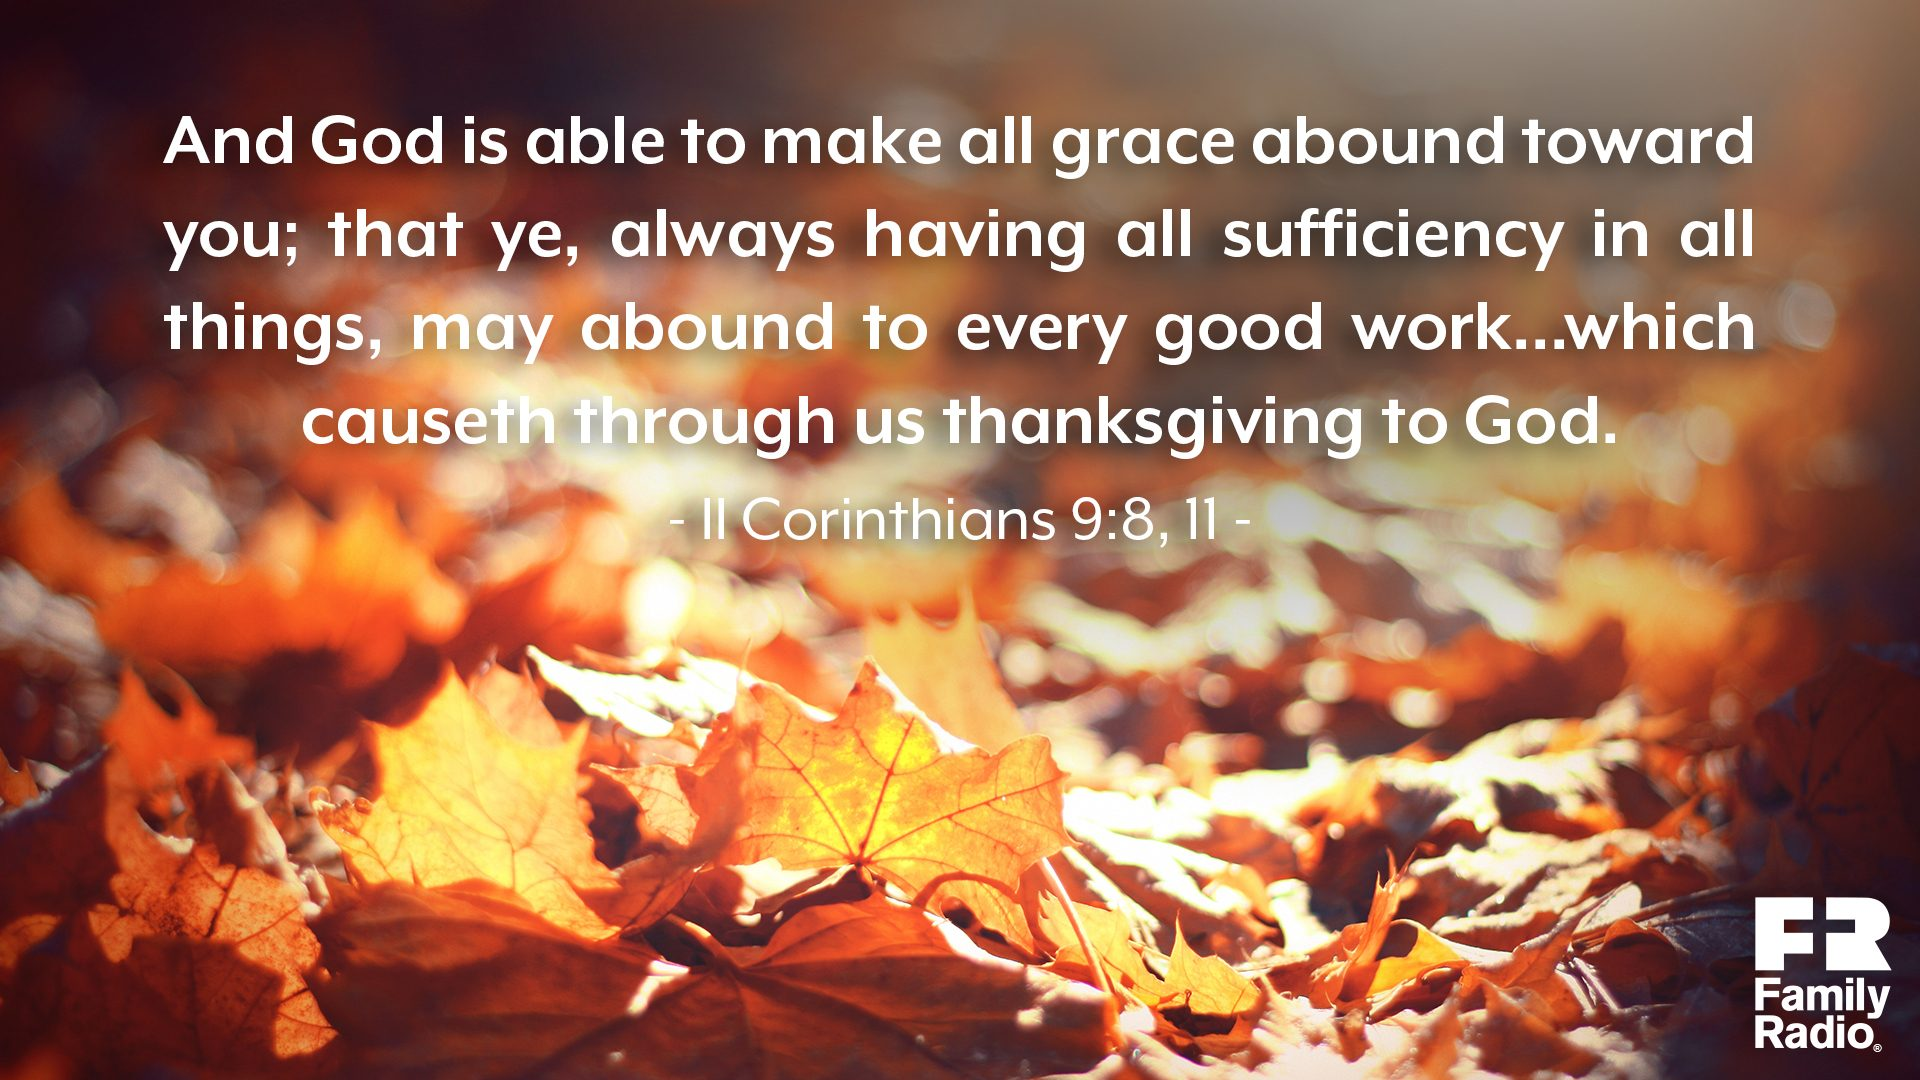 """And God is able to make all grace abound toward you; that ye, always having all sufficiency in all things, may abound to every good work...which causeth through us thanksgiving to God."""